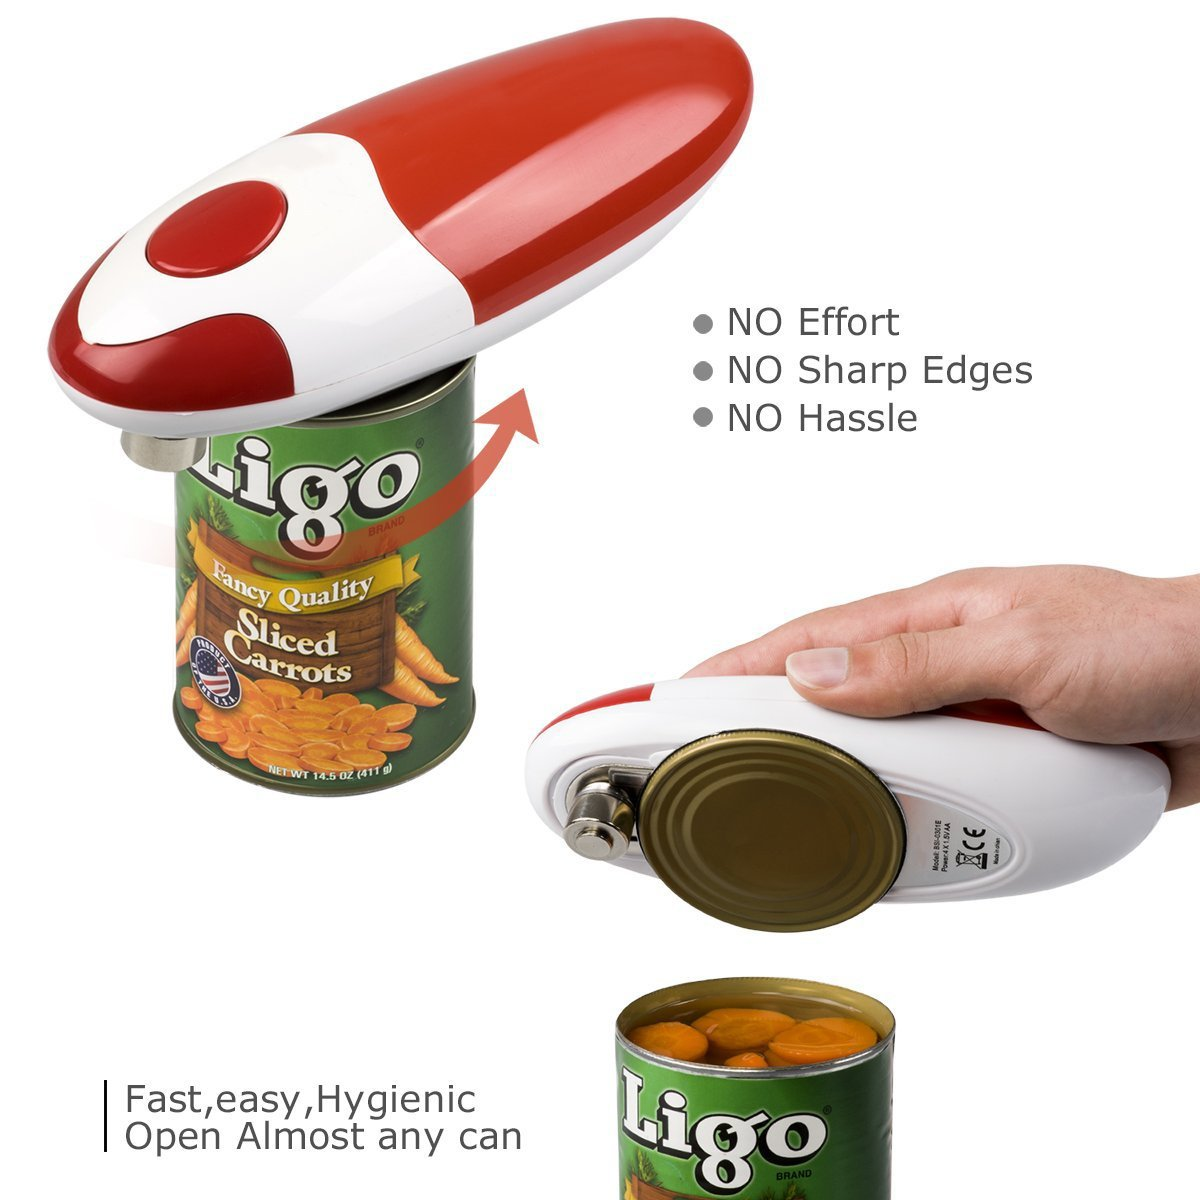 Smooth Soft Edge Electric Can Opener -- One-Button Manual Start / Stop By Can Master (Red)